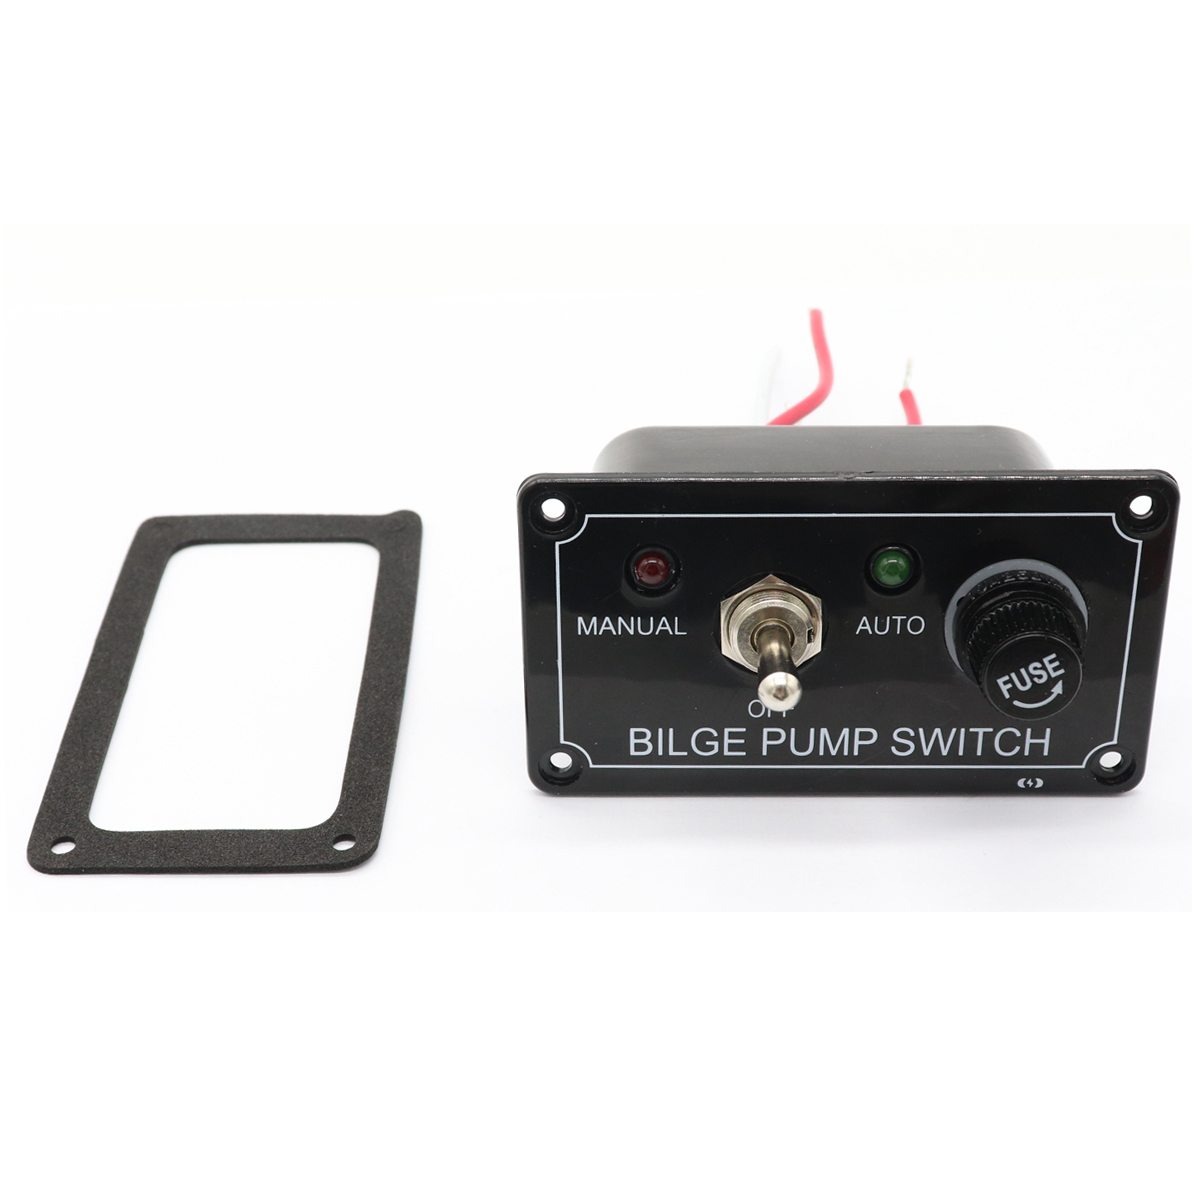 Automatic Bilge Pump Switch Wiring Diagram Motorcycle Review And